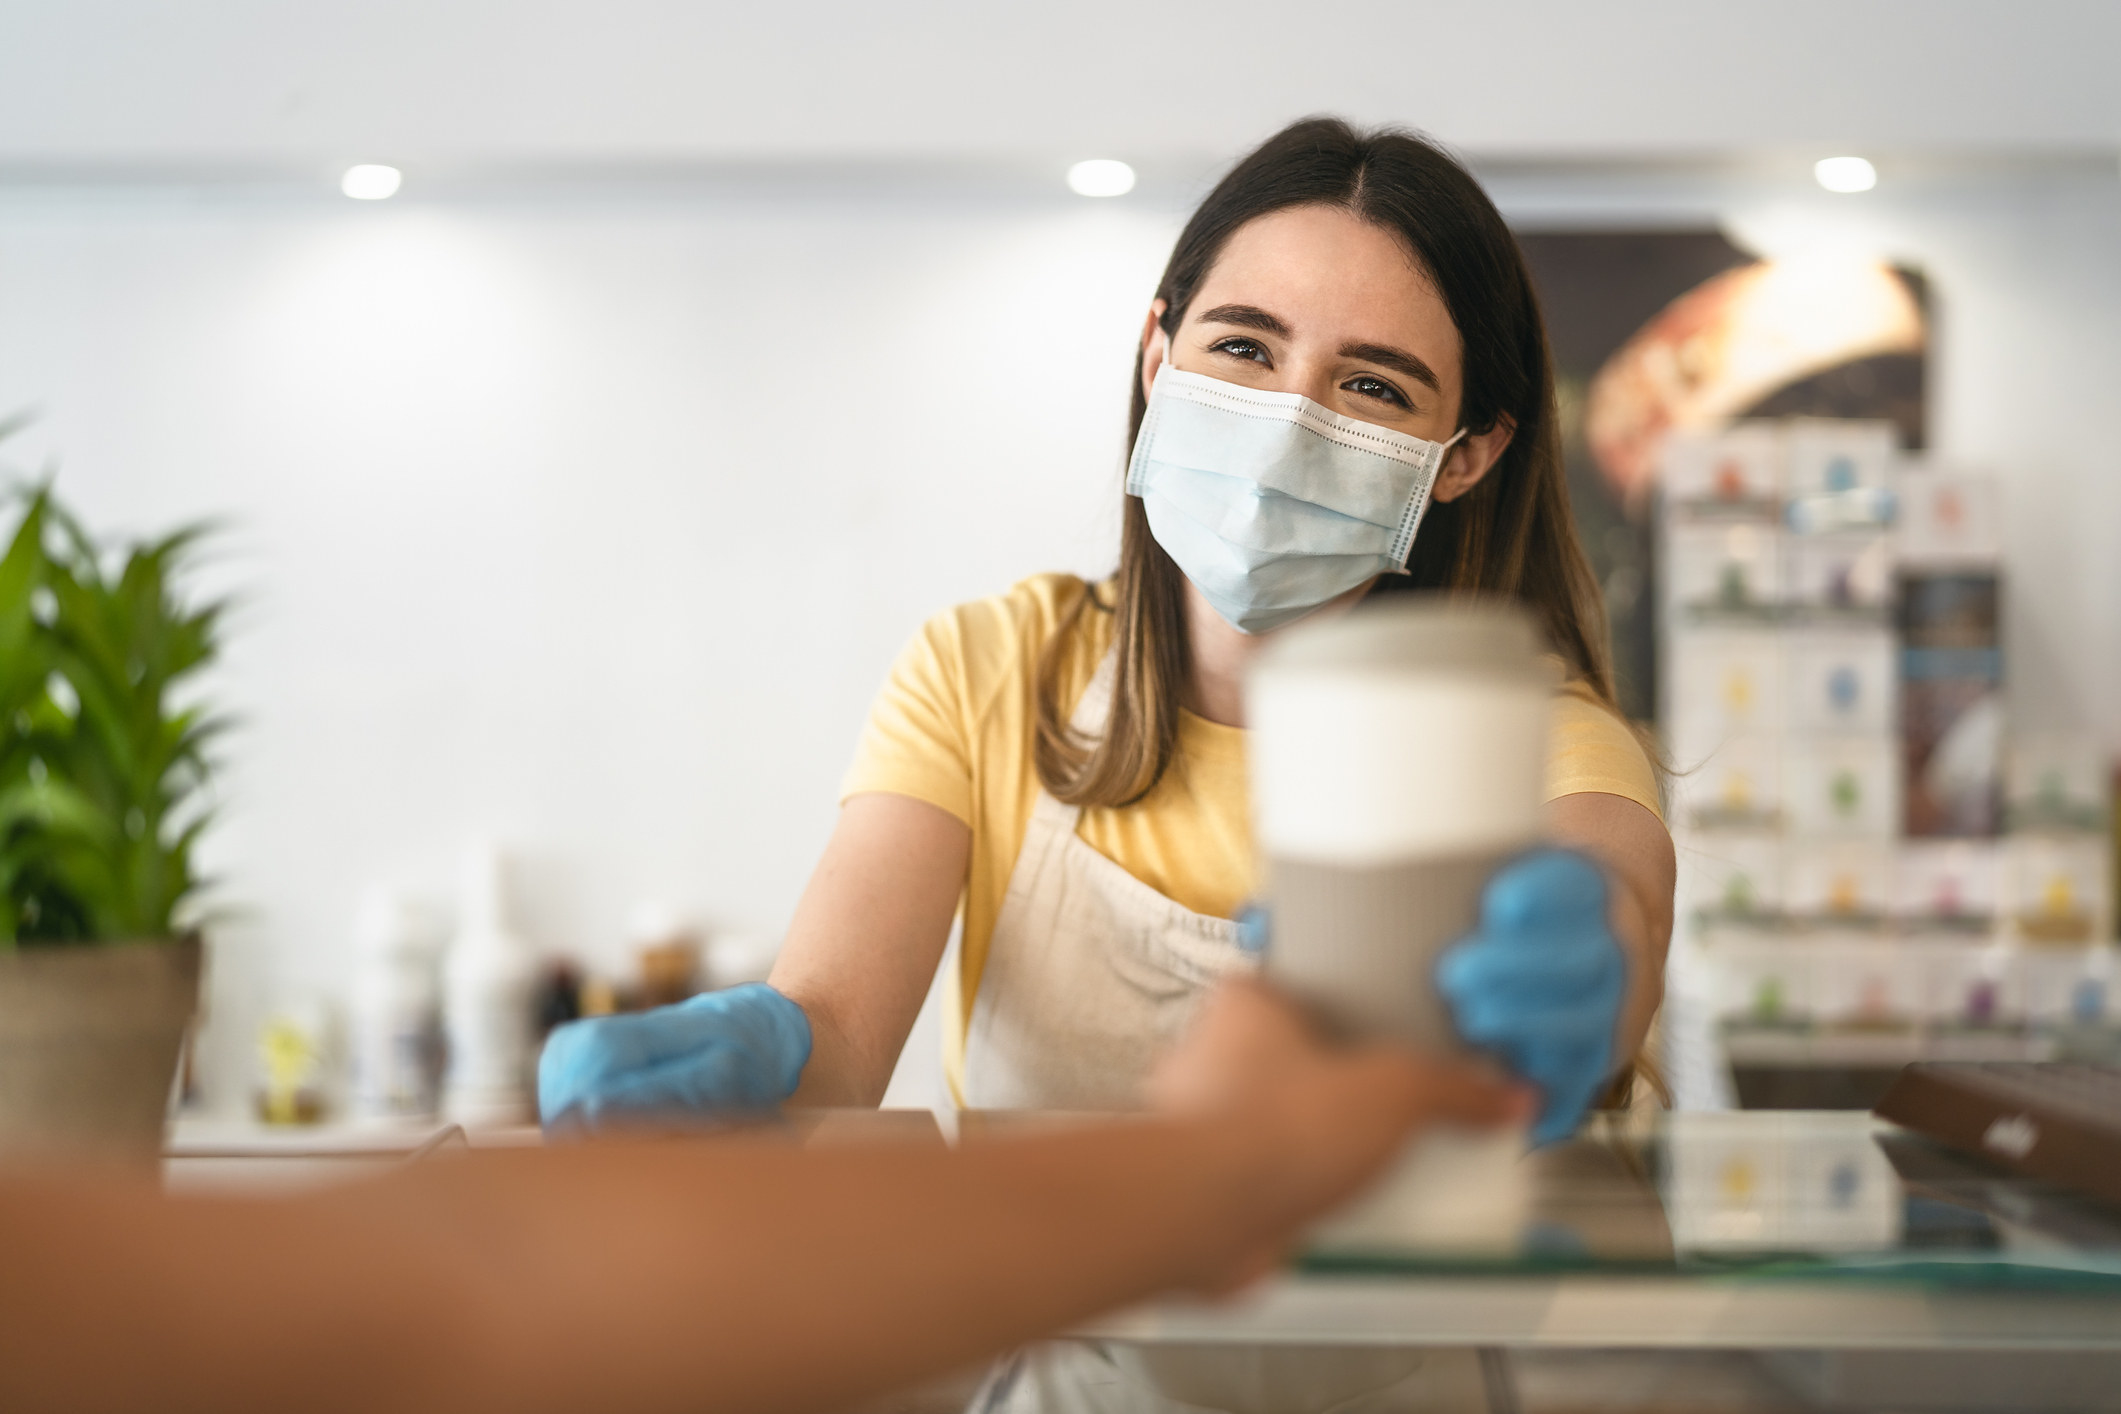 barista wearing mask handing cup of coffee to customer